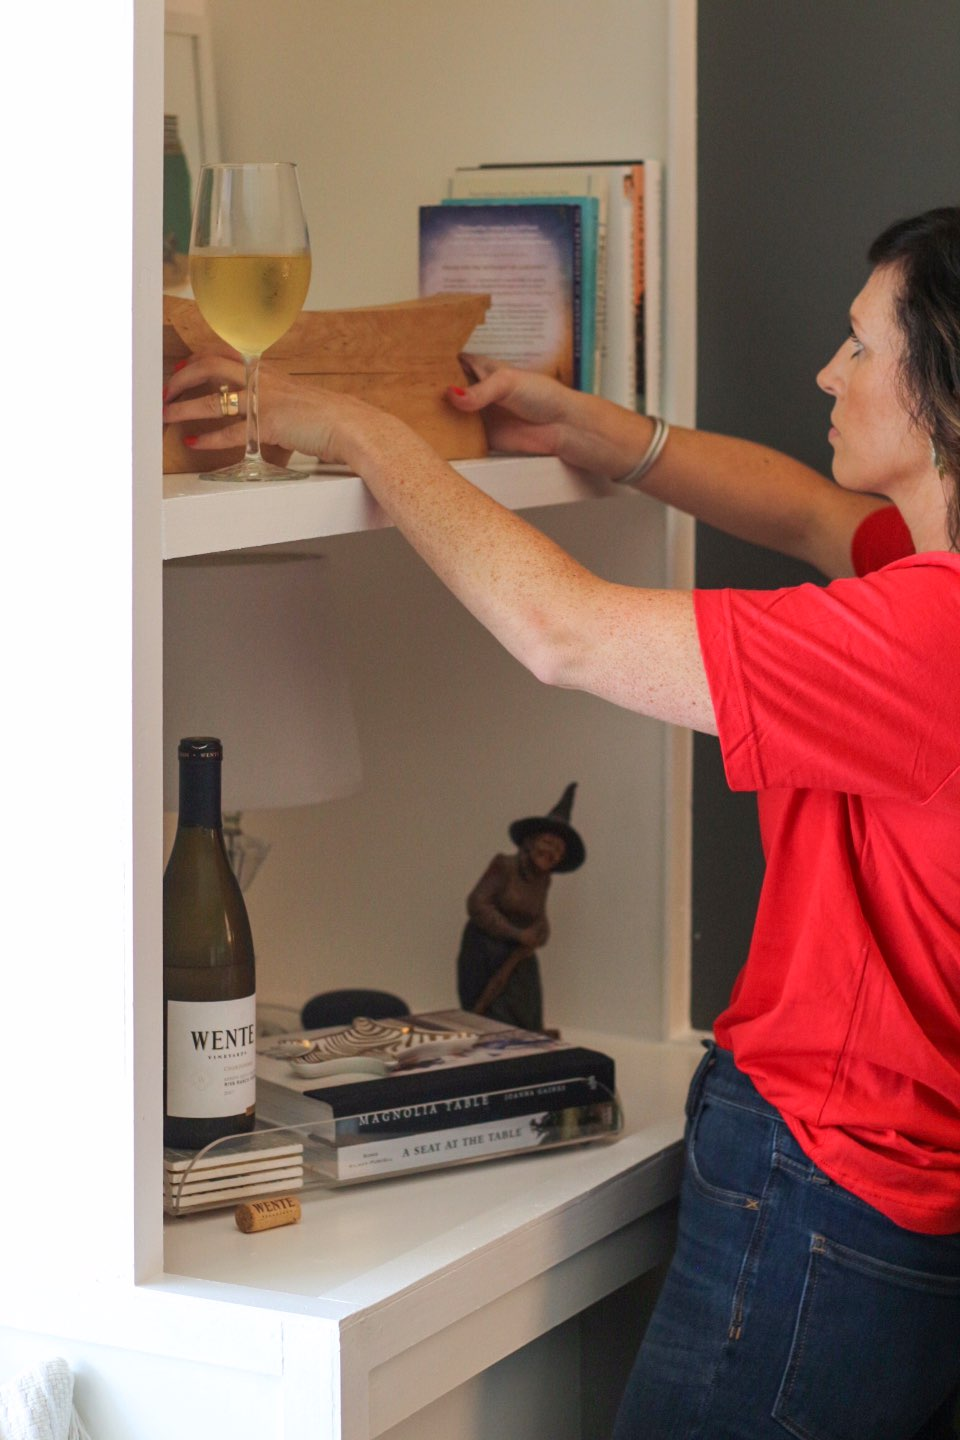 How I Make Time for Decorating with Wente Vineyards - I'm Fixin' To - @mbg0112 | How I Make Time for Decorating with Wente Vineyards by popular North Carolina lifestyle blog, I'm Fixin' To: image of a woman rearranging a book shelf in her home with a bottle and glass of Wente Vineyards wine close by